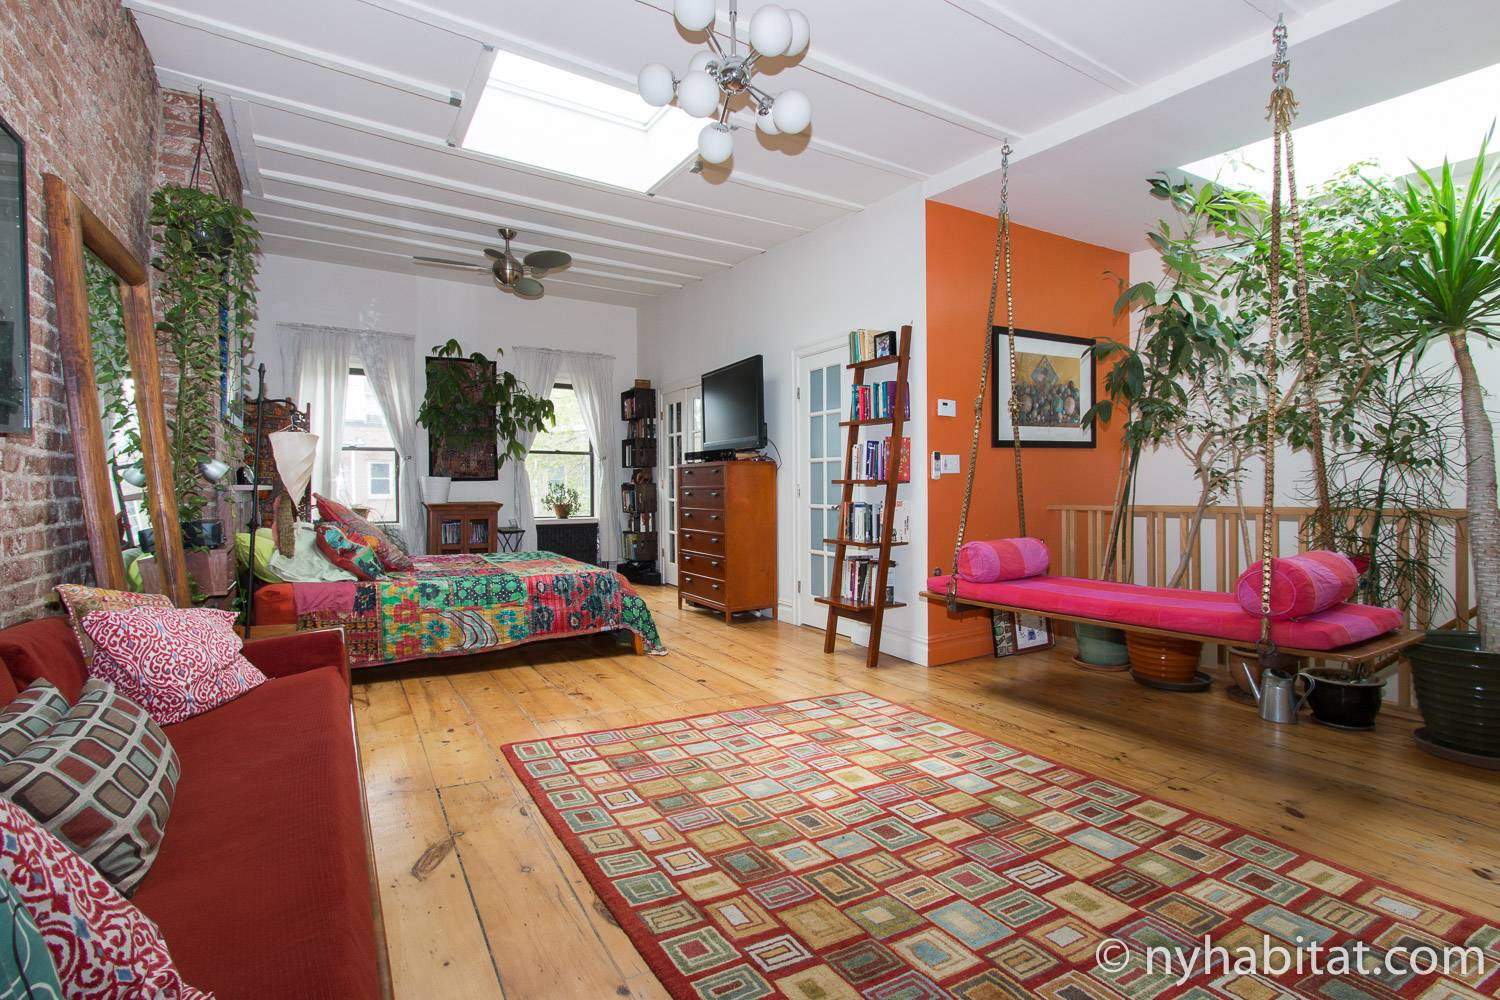 Image of bedroom in furnished rental NY-15373 in Boerum Hill, Brooklyn with indoor plants around the room and colorful bohemian decor